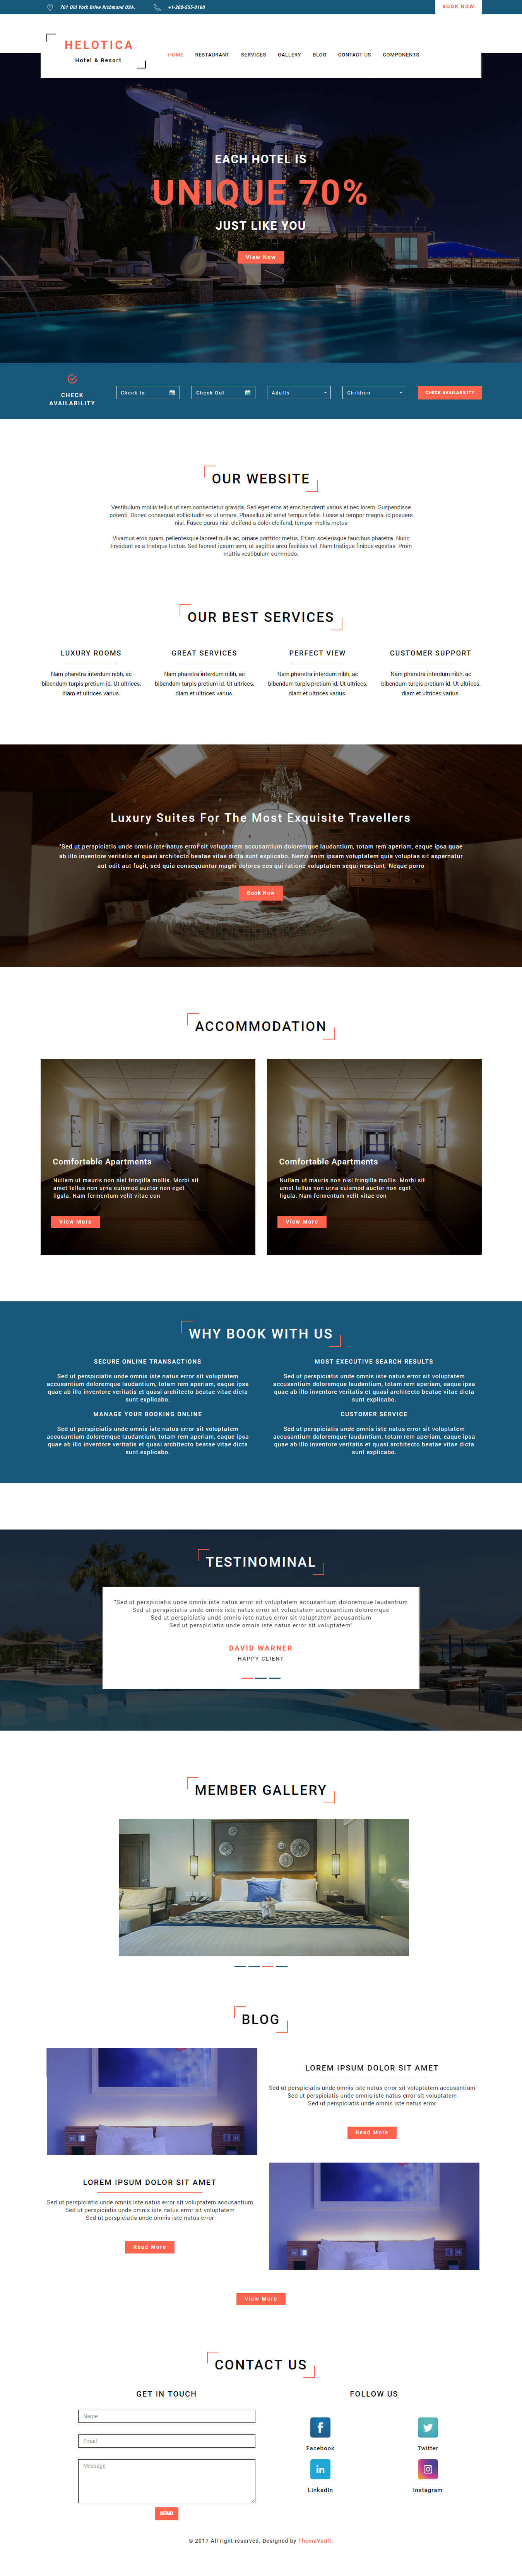 Helotica – Online Travel Agency Website Template HTML5 Free